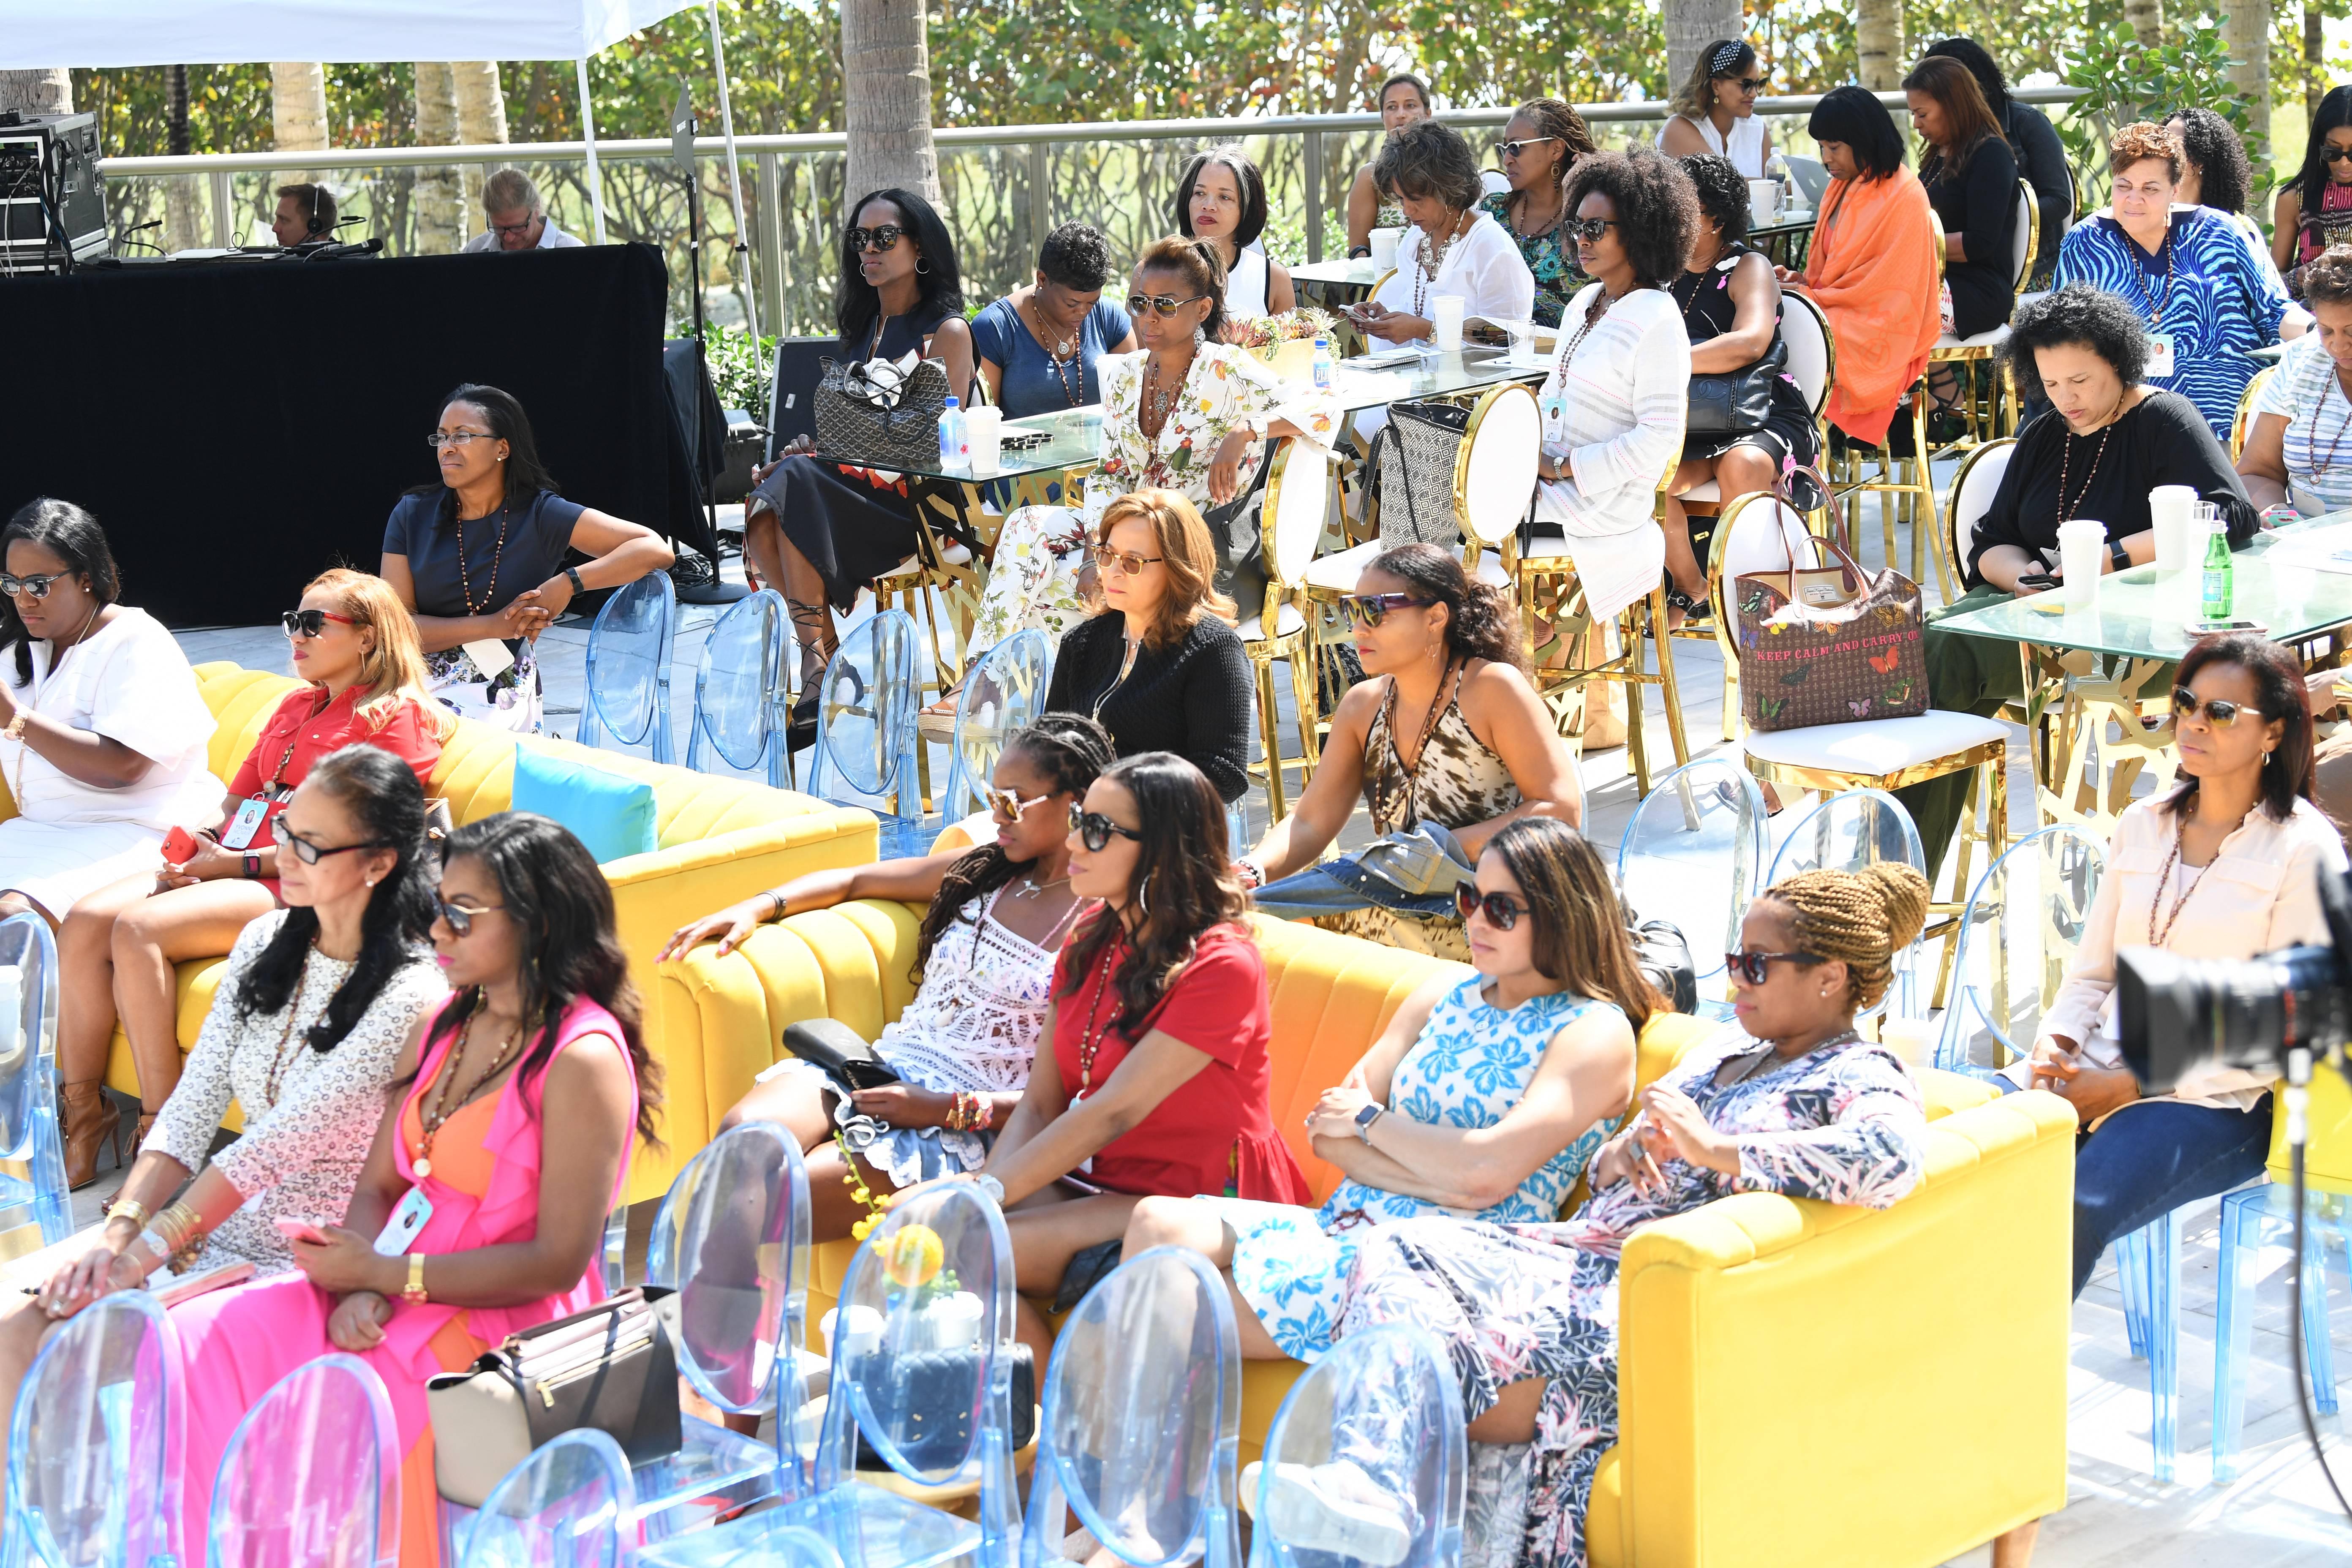 The crowd listens to financial advice. - The crowd listens to financial advice. (Photo: Phelan Marc/BET)